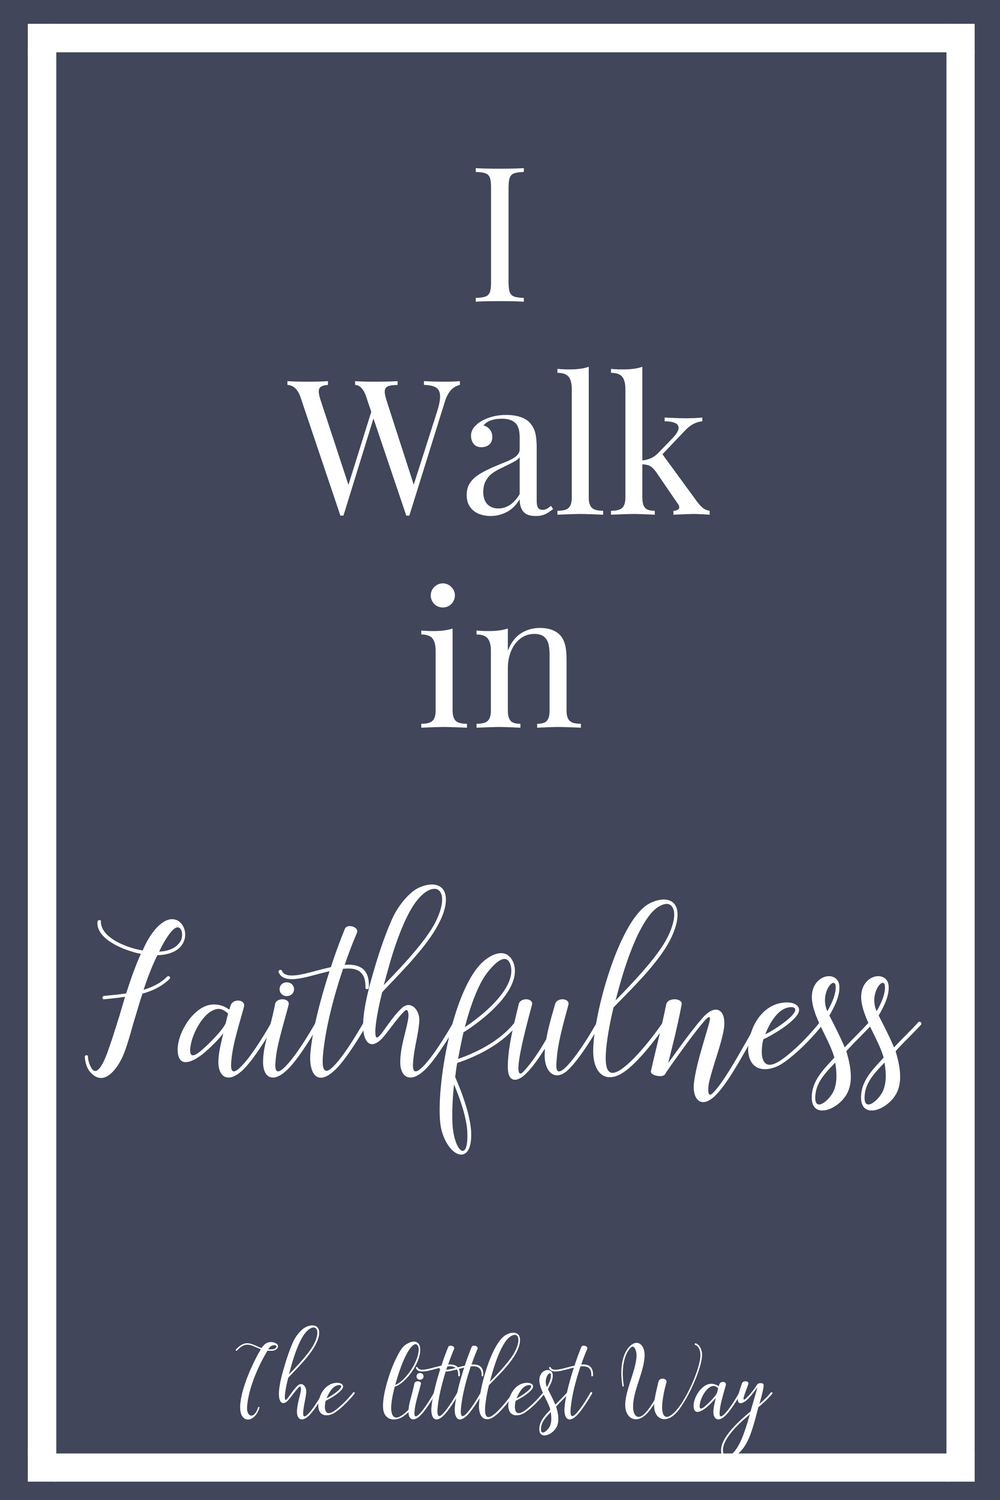 I walk in faithfulness should become a part of our daily, scriptural affirmations.